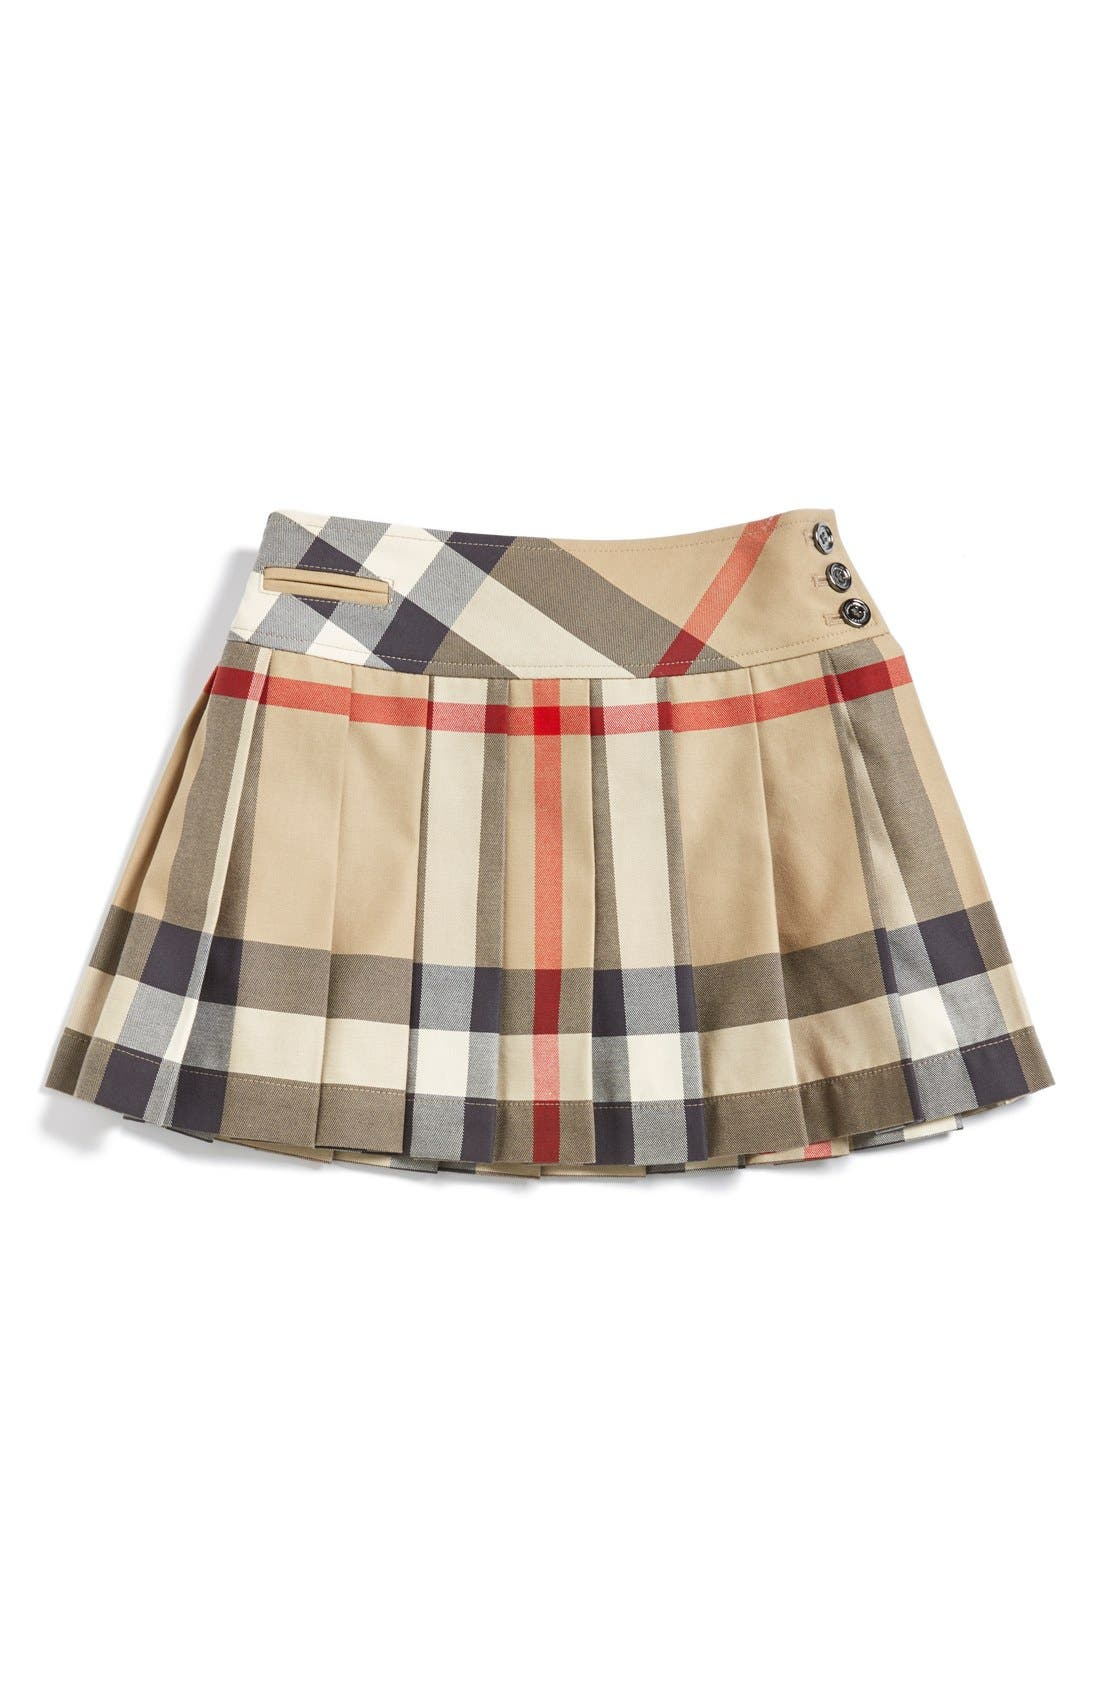 Alternate Image 1 Selected - Burberry Check Print Skirt (Little Girls & Big Girls)